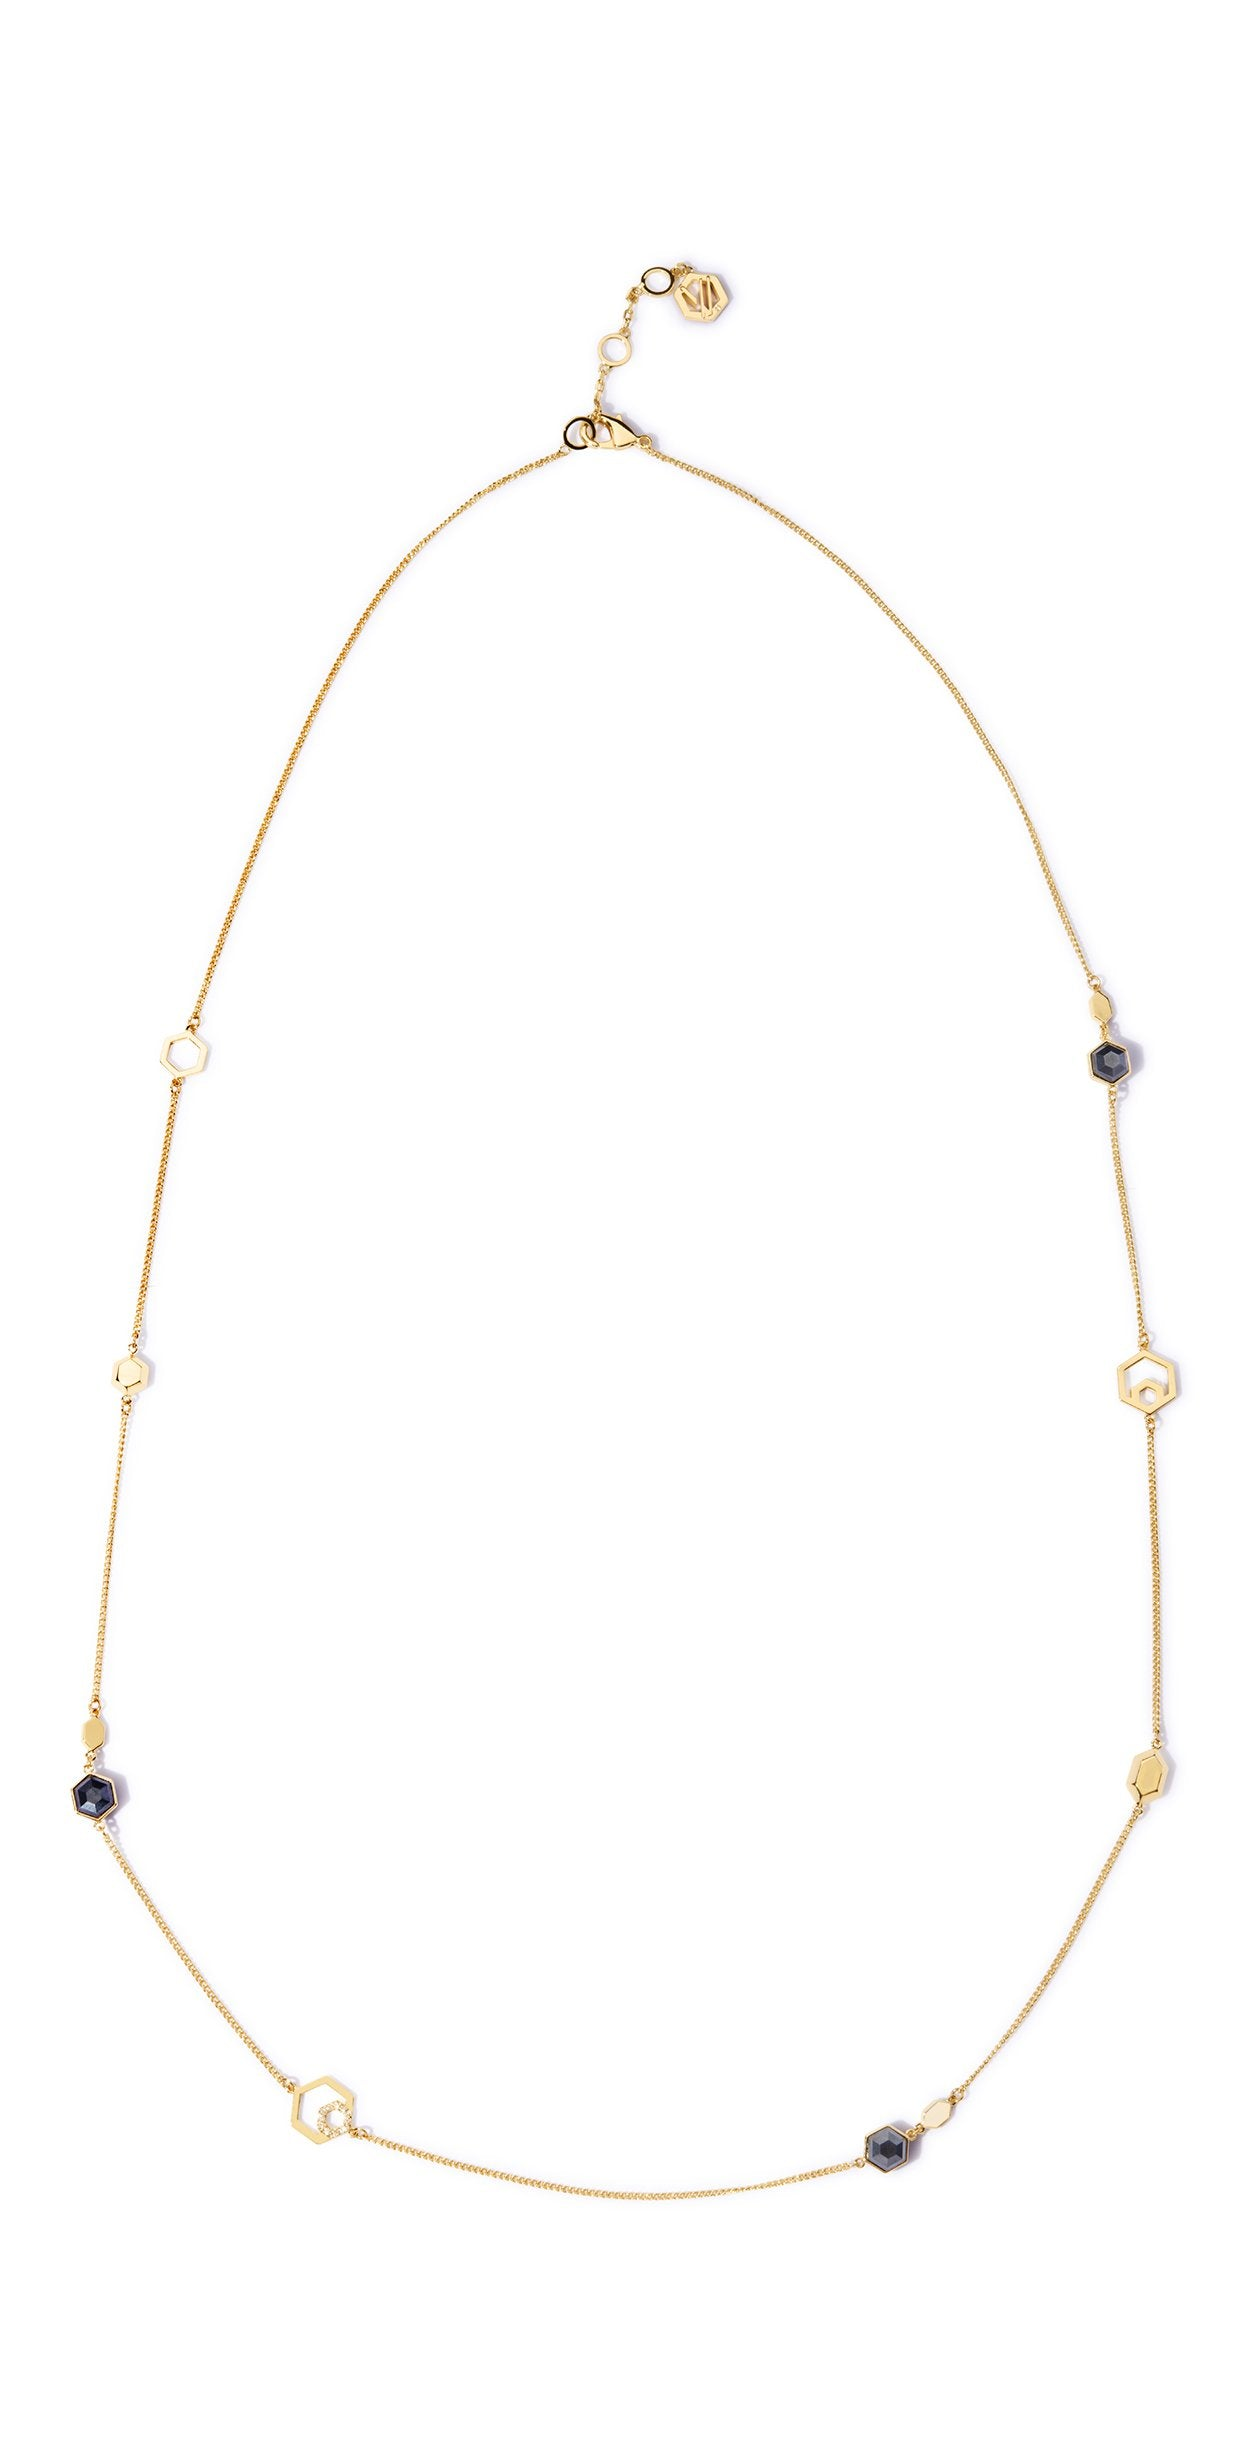 Colette Station Necklace - 2 Tone Gold and Hematite